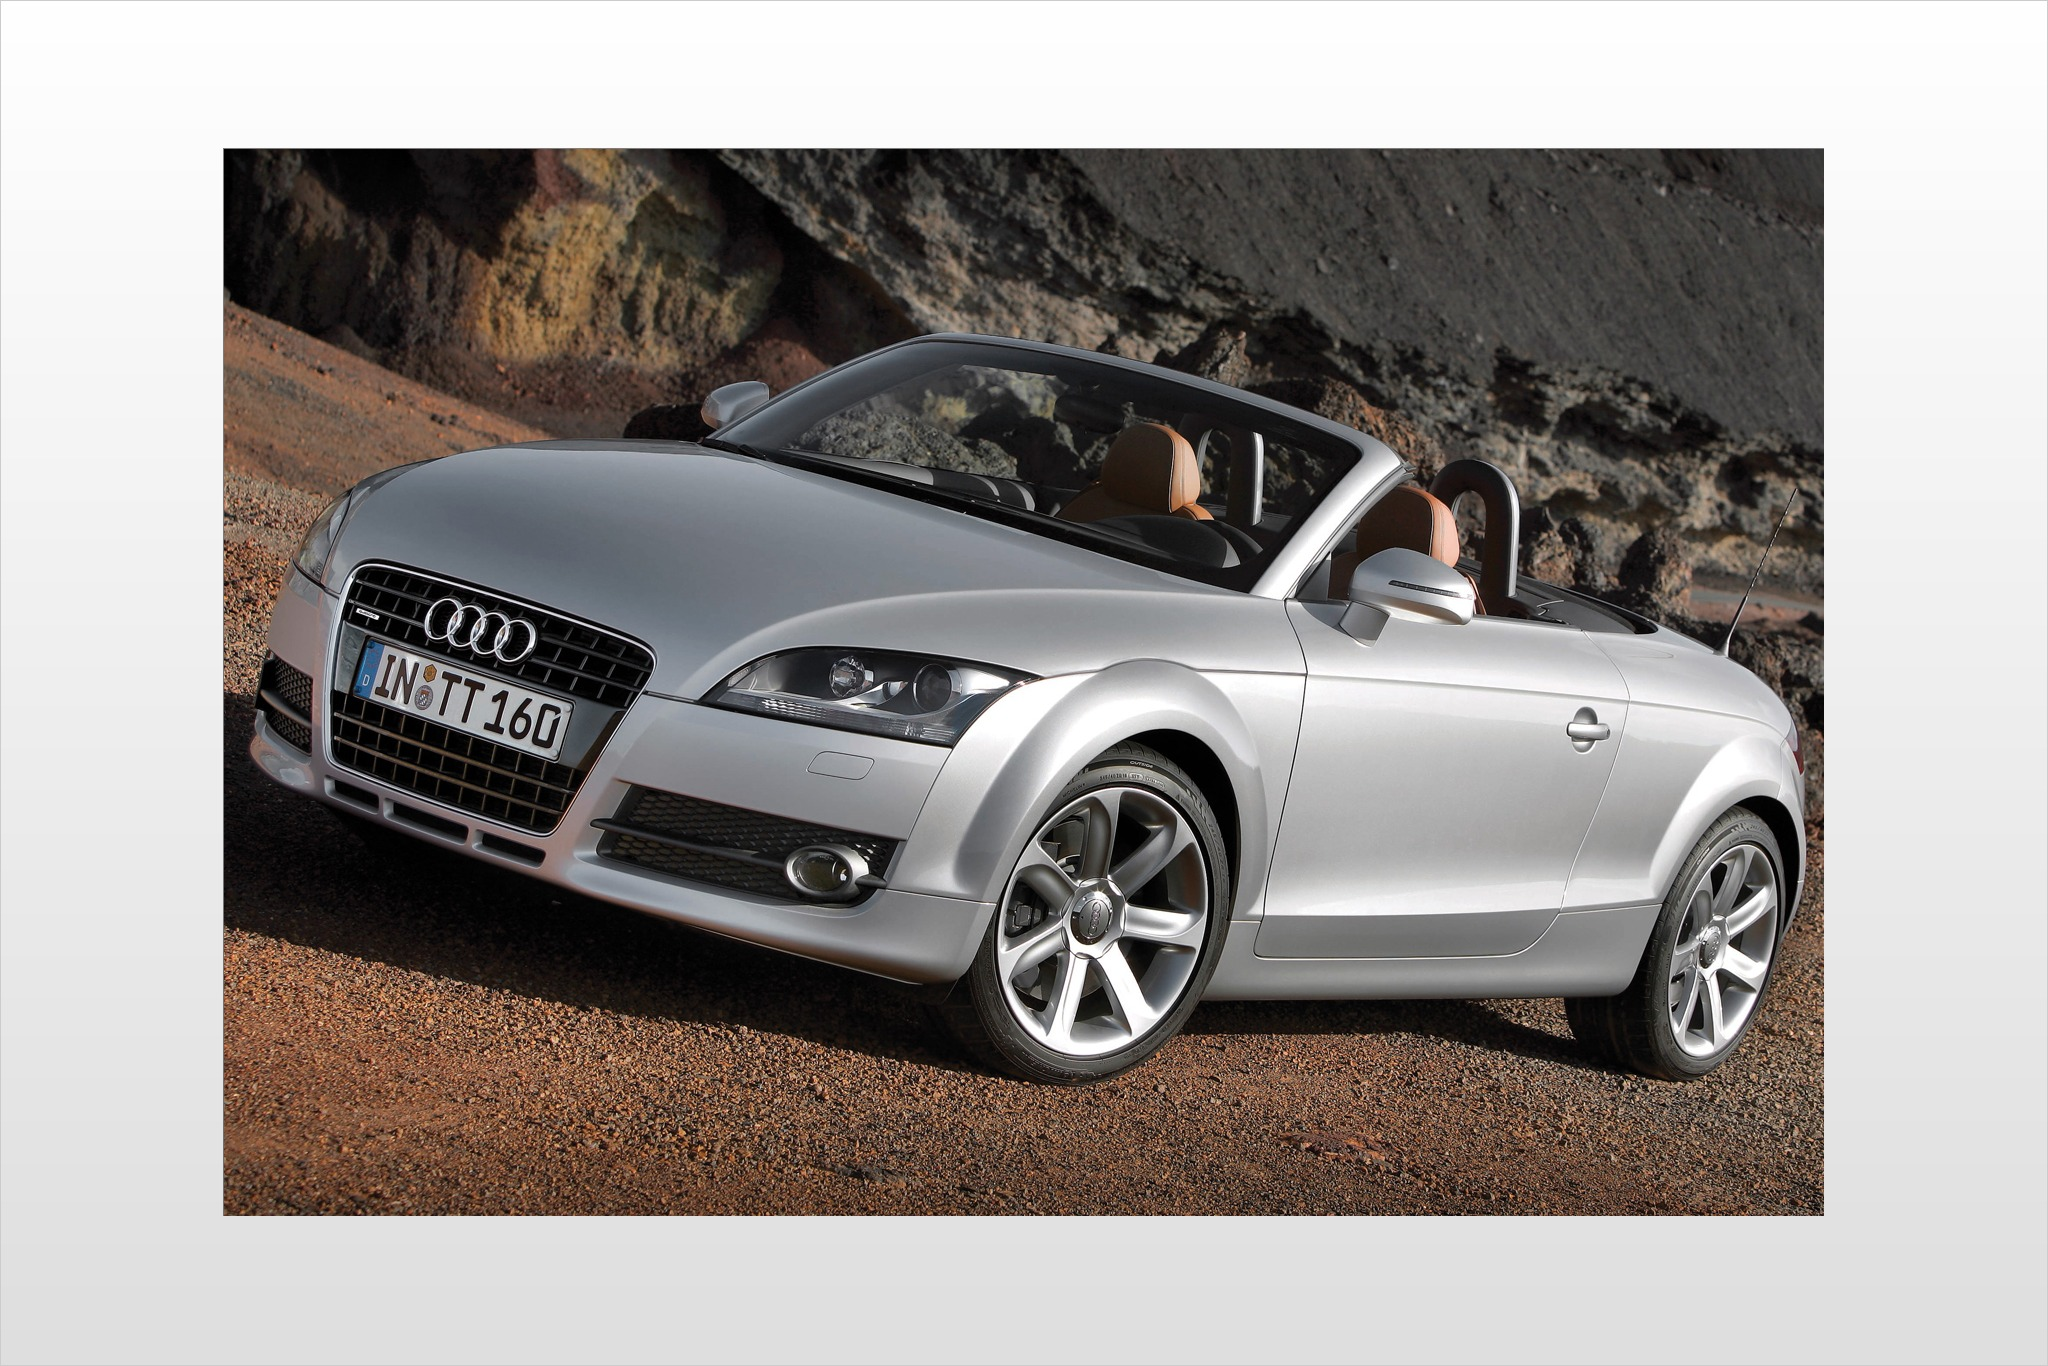 2008 audi tt - information and photos - zombiedrive